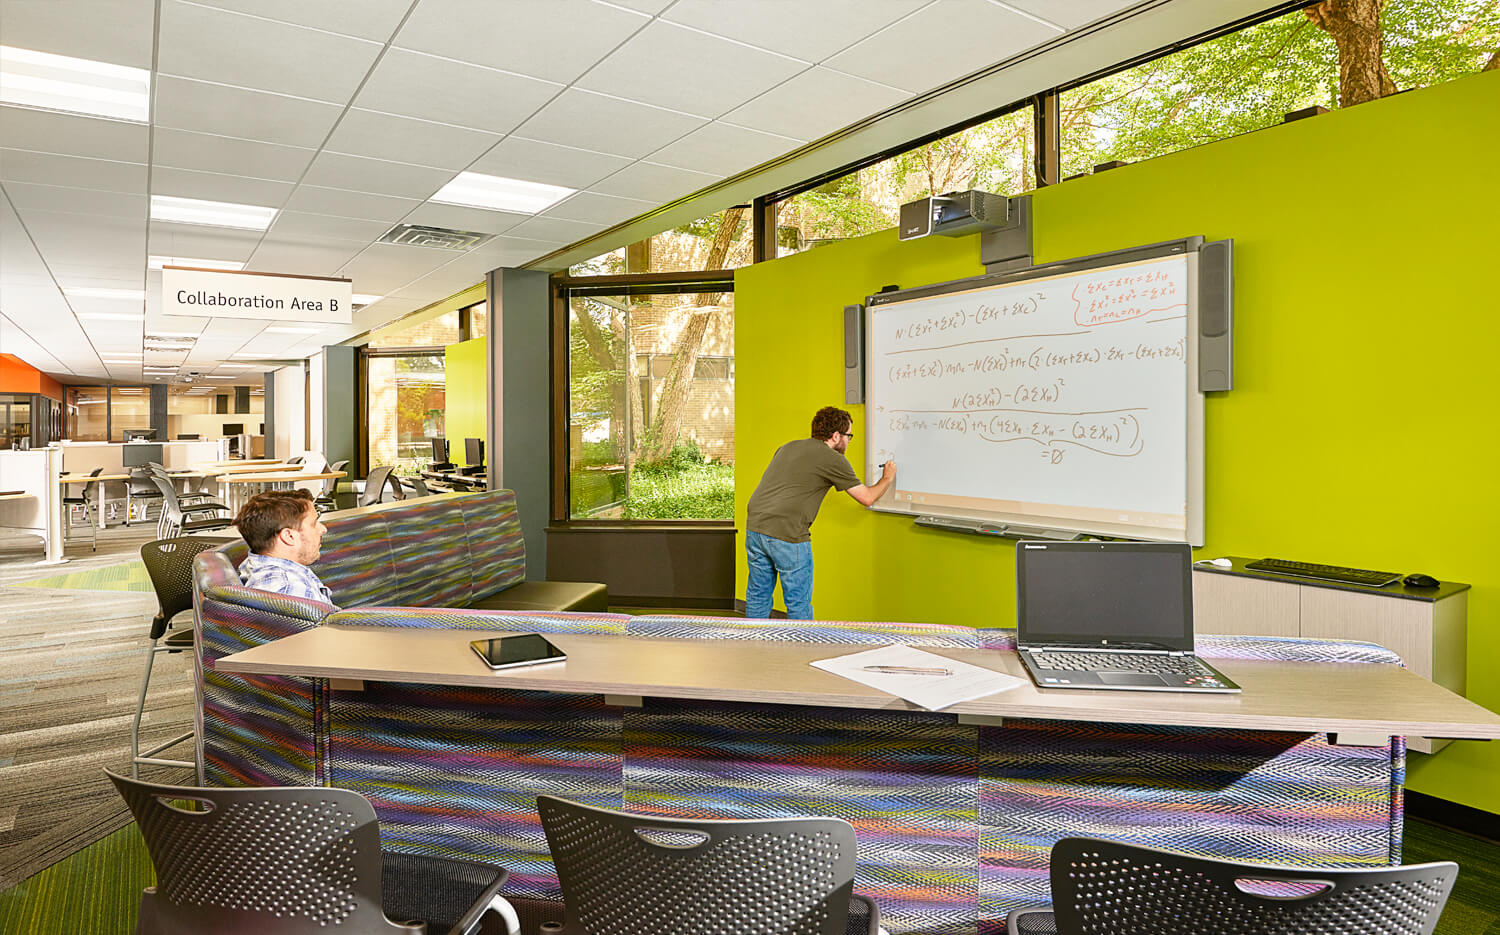 cmba-architects-portfolio-educational-technology-center-collaboration-area